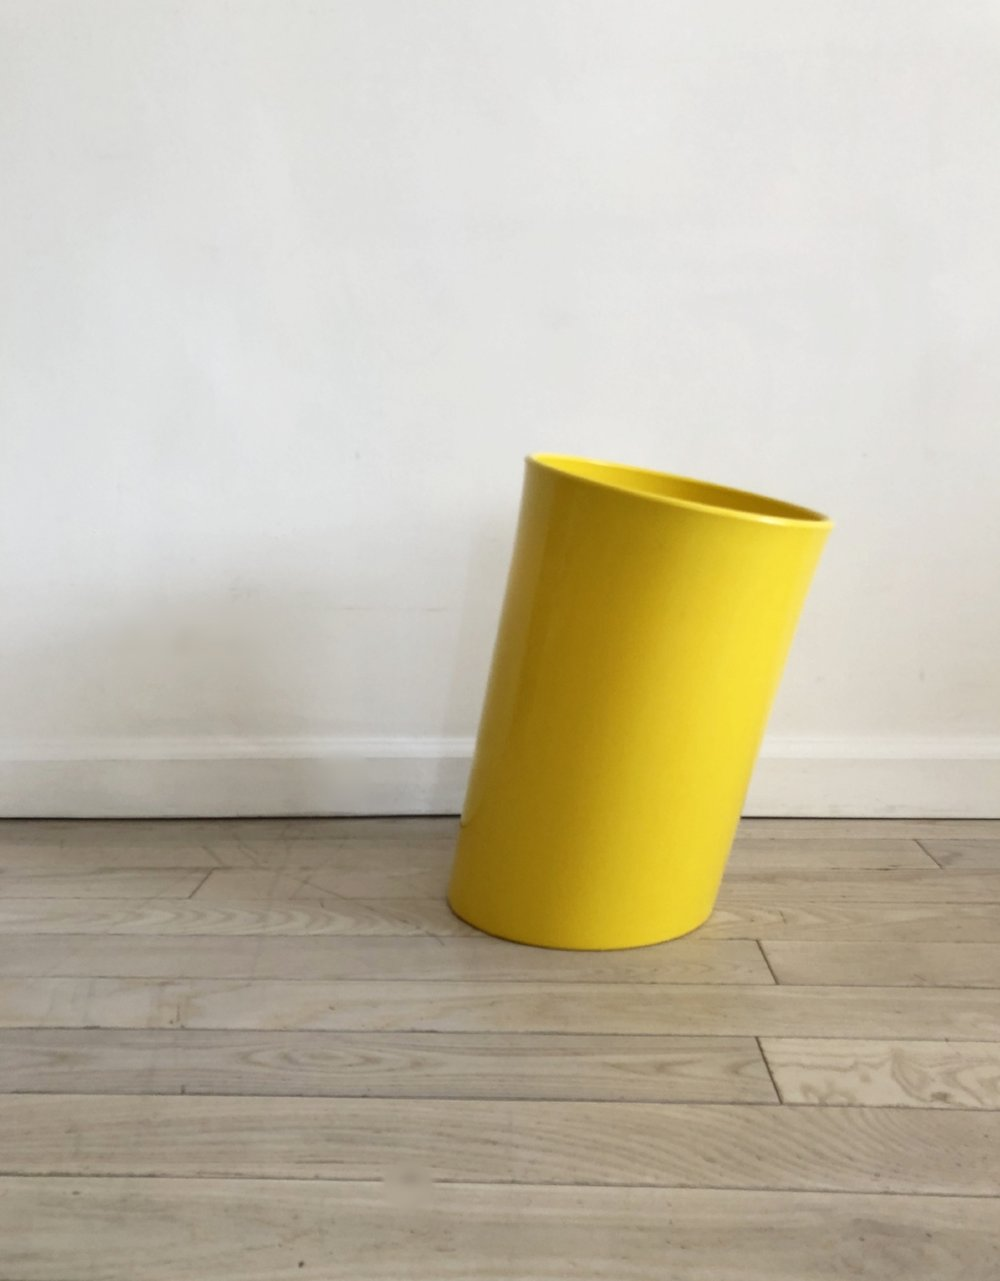 1970s Attesa Slanted Waste Bin by Enzo Mari for Heller